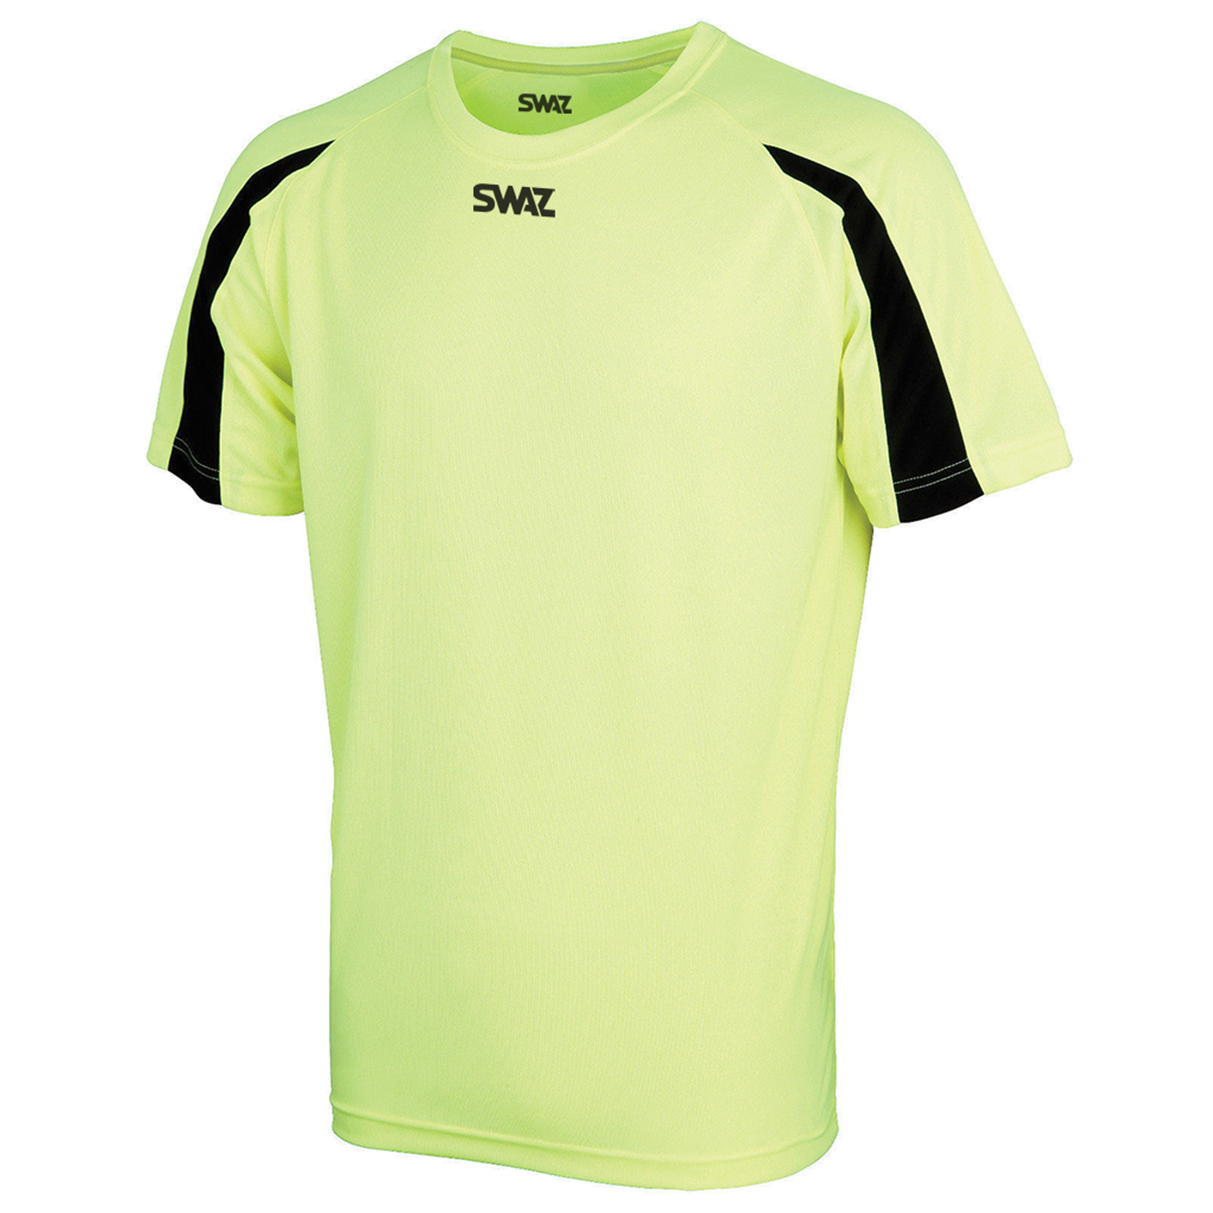 SWAZ Youth Premier Training T-Shirt - Yellow   Black Available in 5 ... 85cdebf43